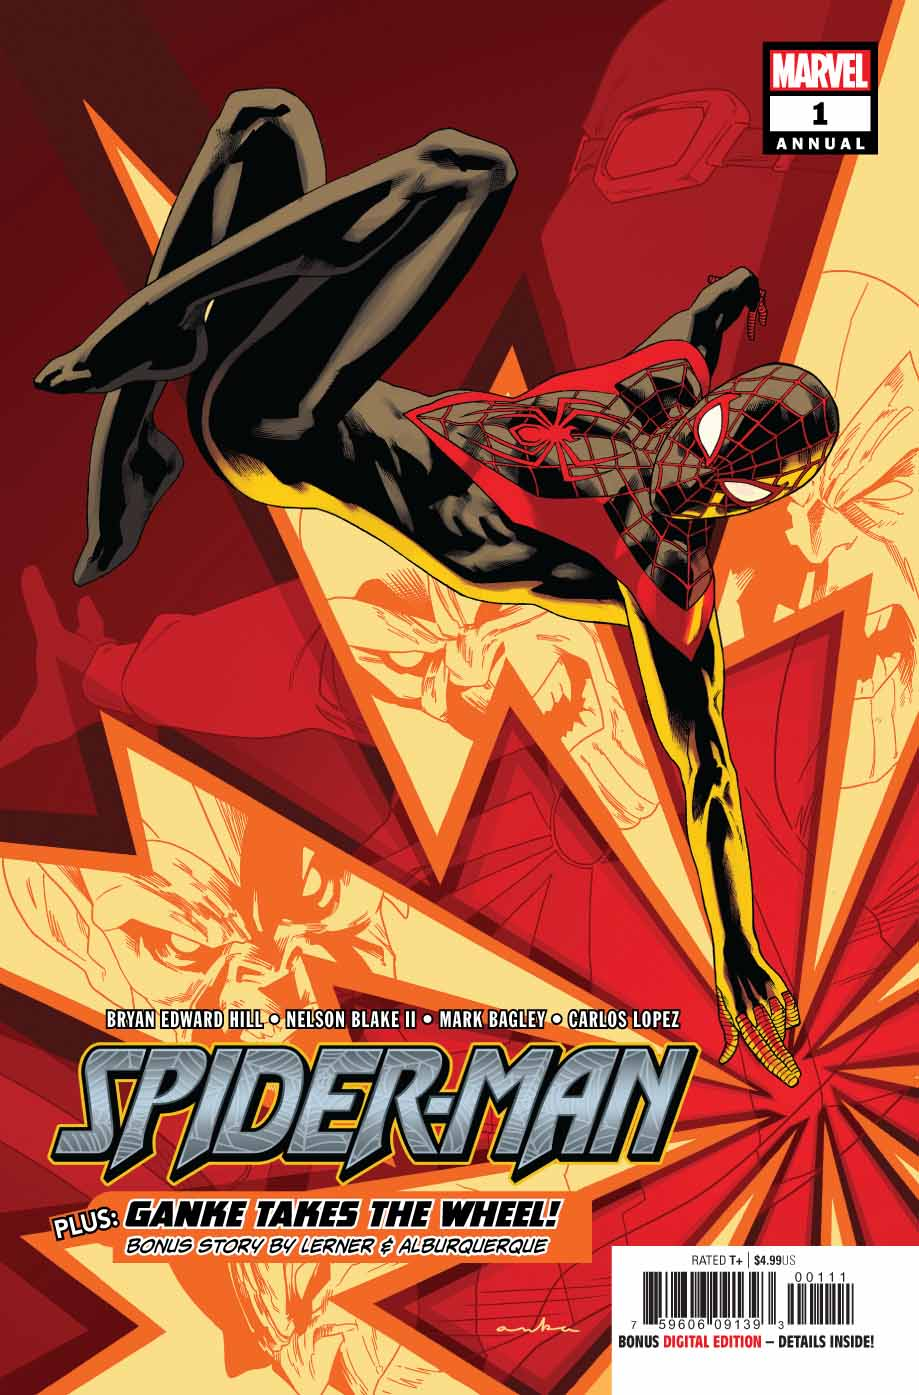 spidermanannual1c